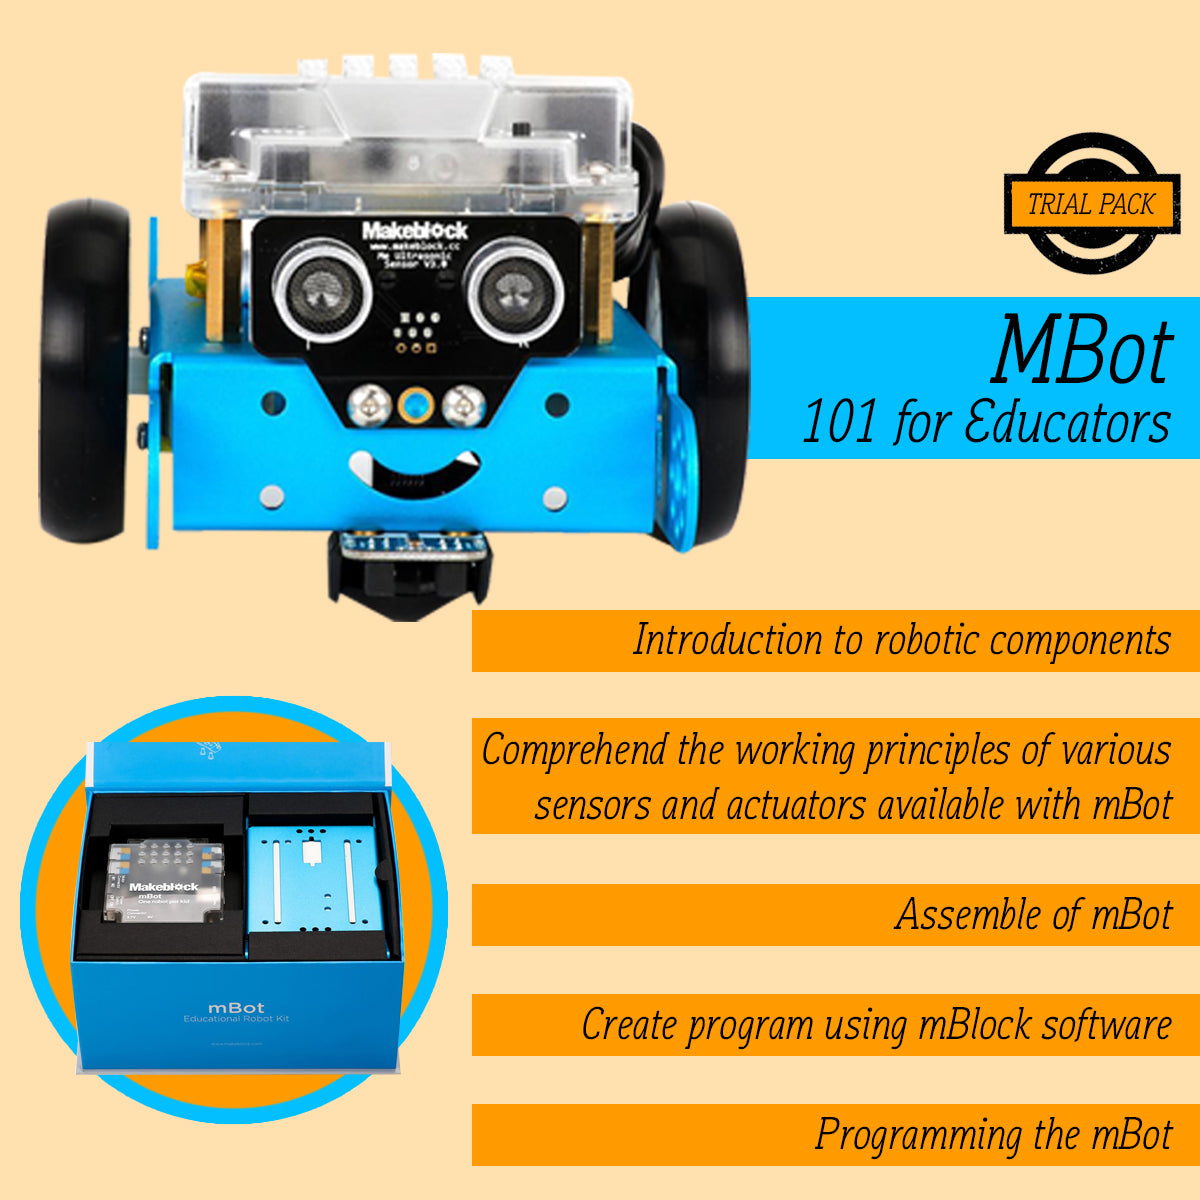 Buy [Trial] mBot online course 101 for educators (with